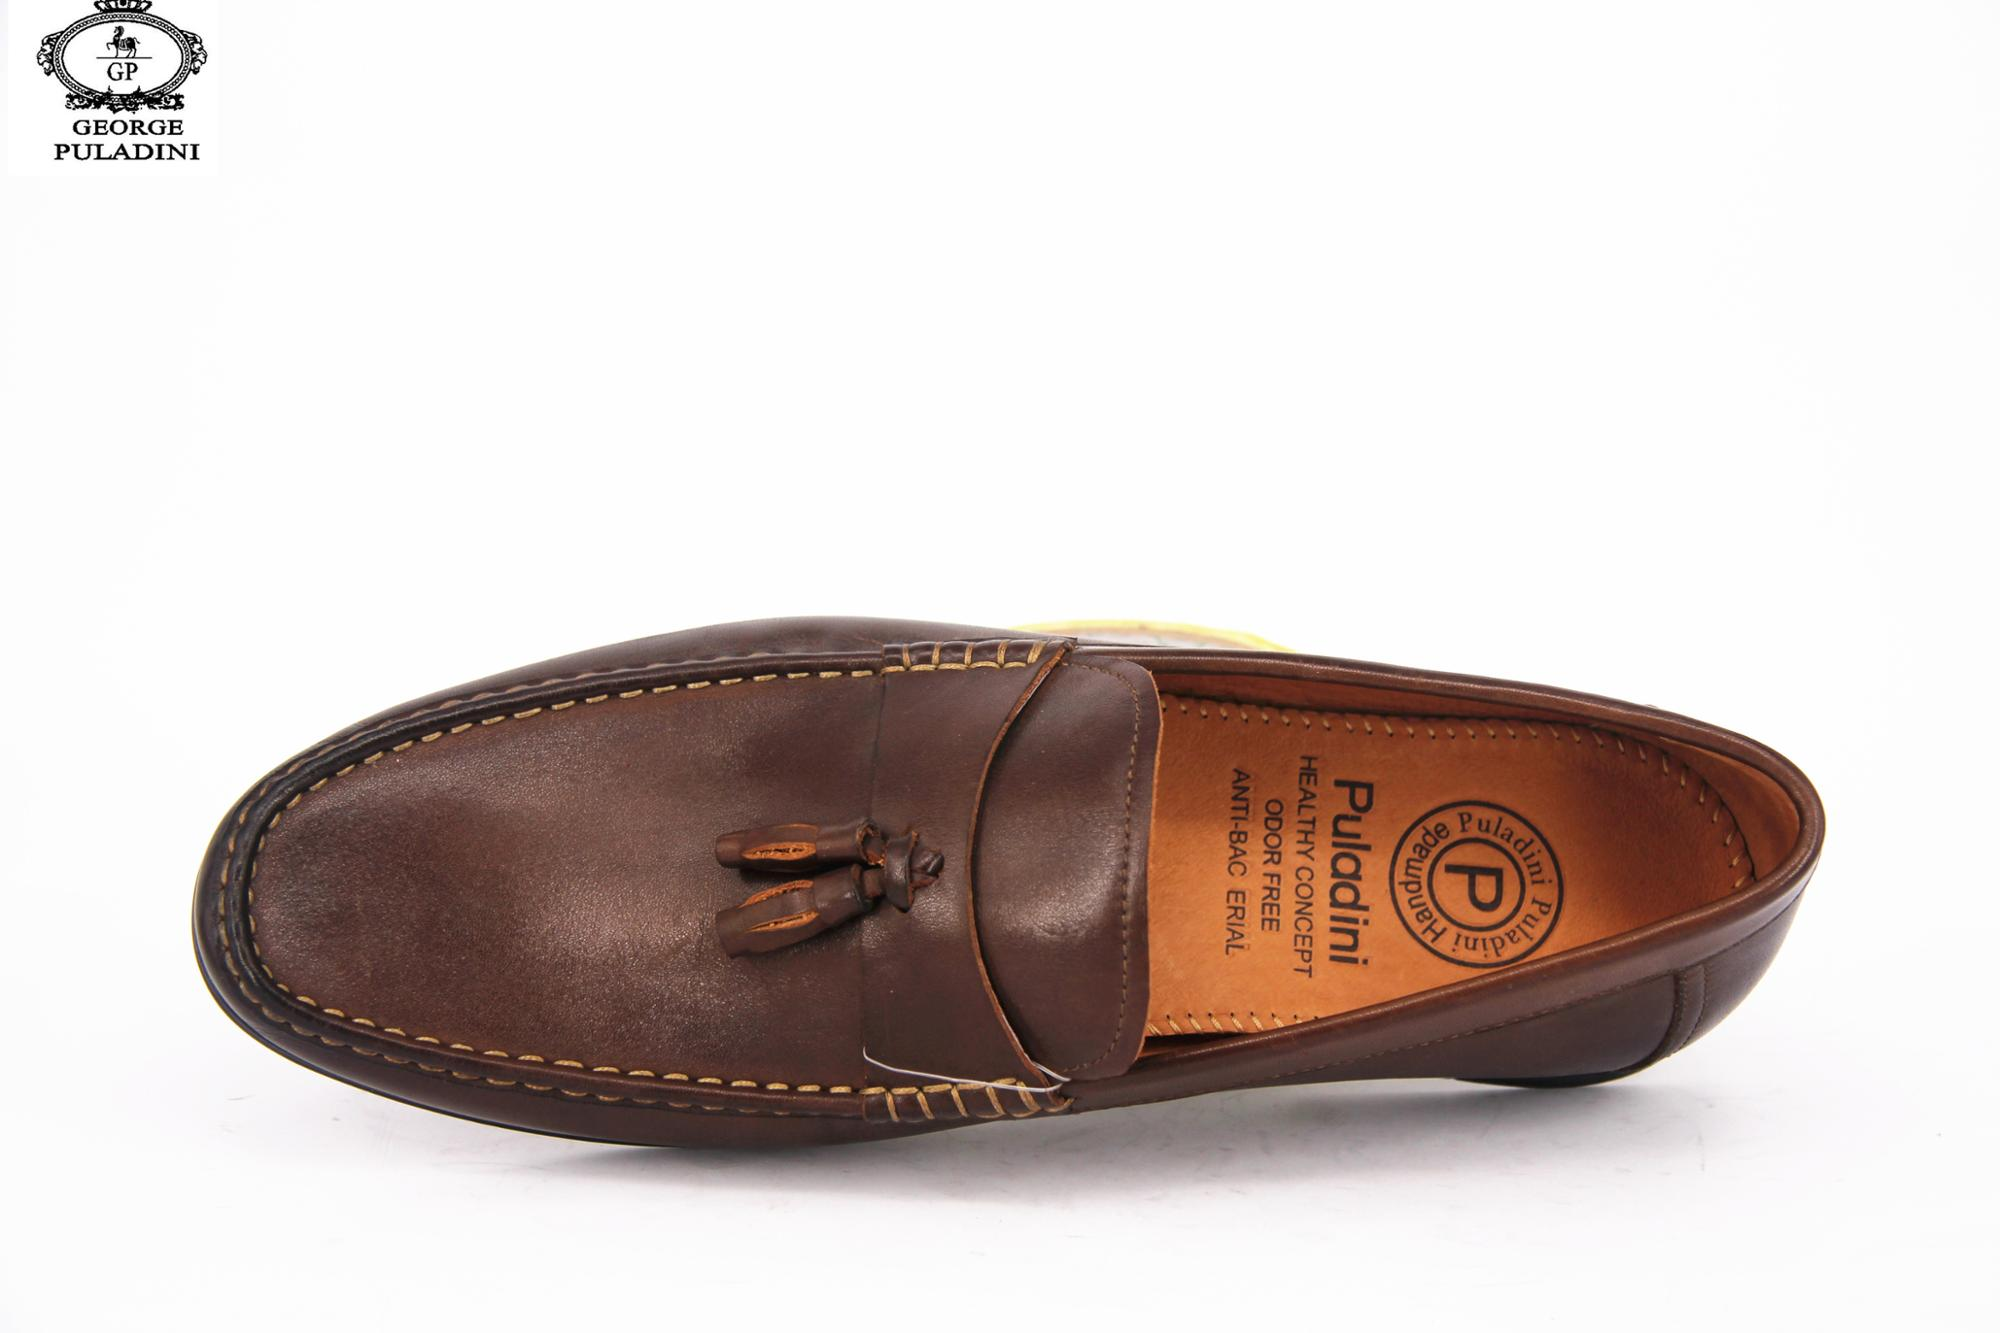 Shoes Moccasin Soft 2018 Driving For Men Latest Shoes For Genuine